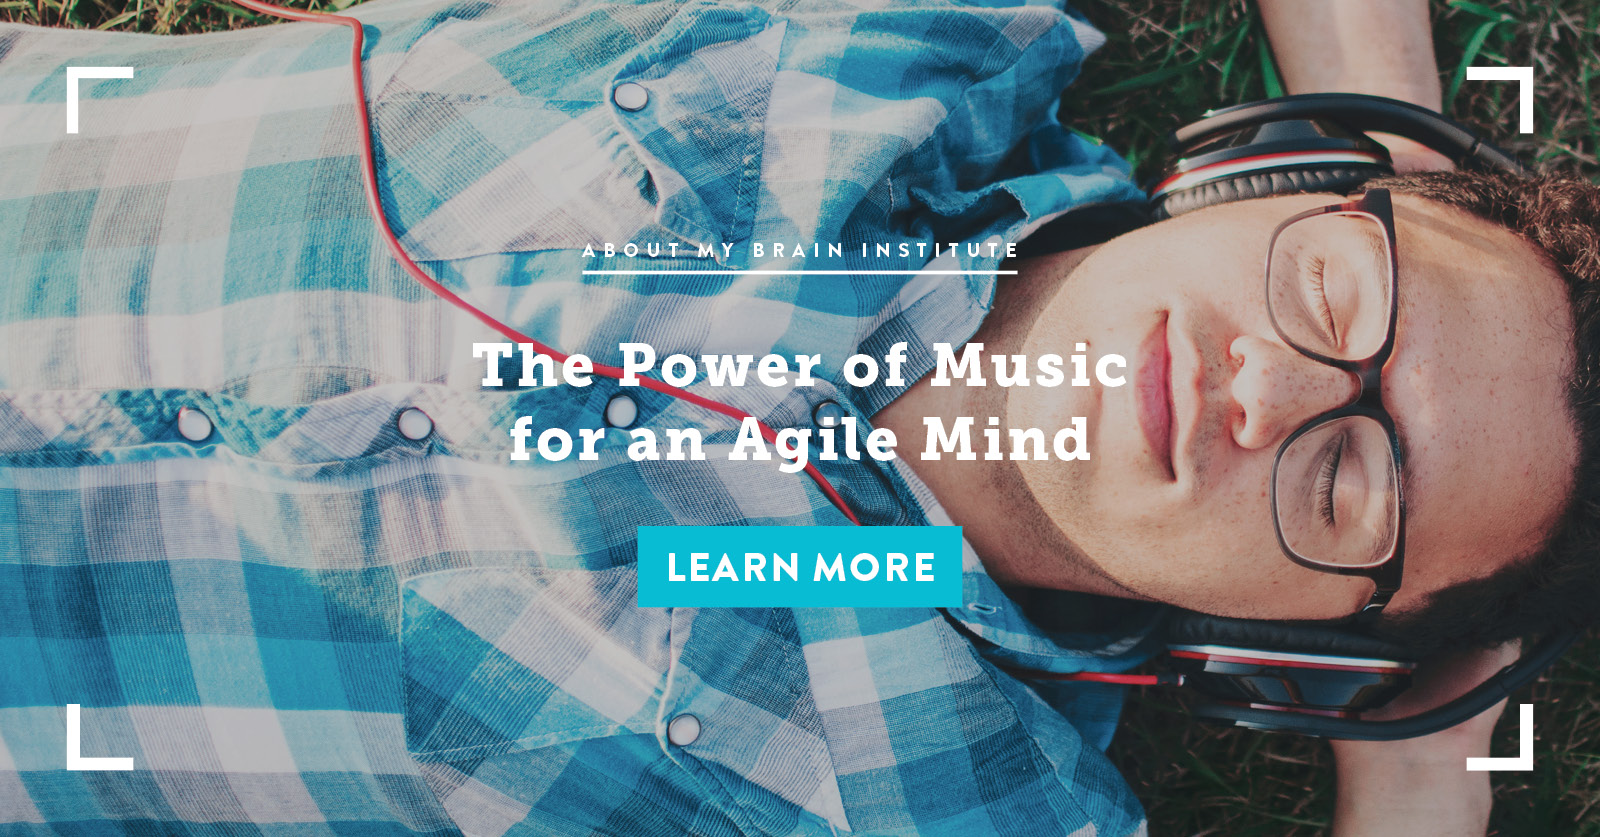 The Power of Music for an Agile Mind